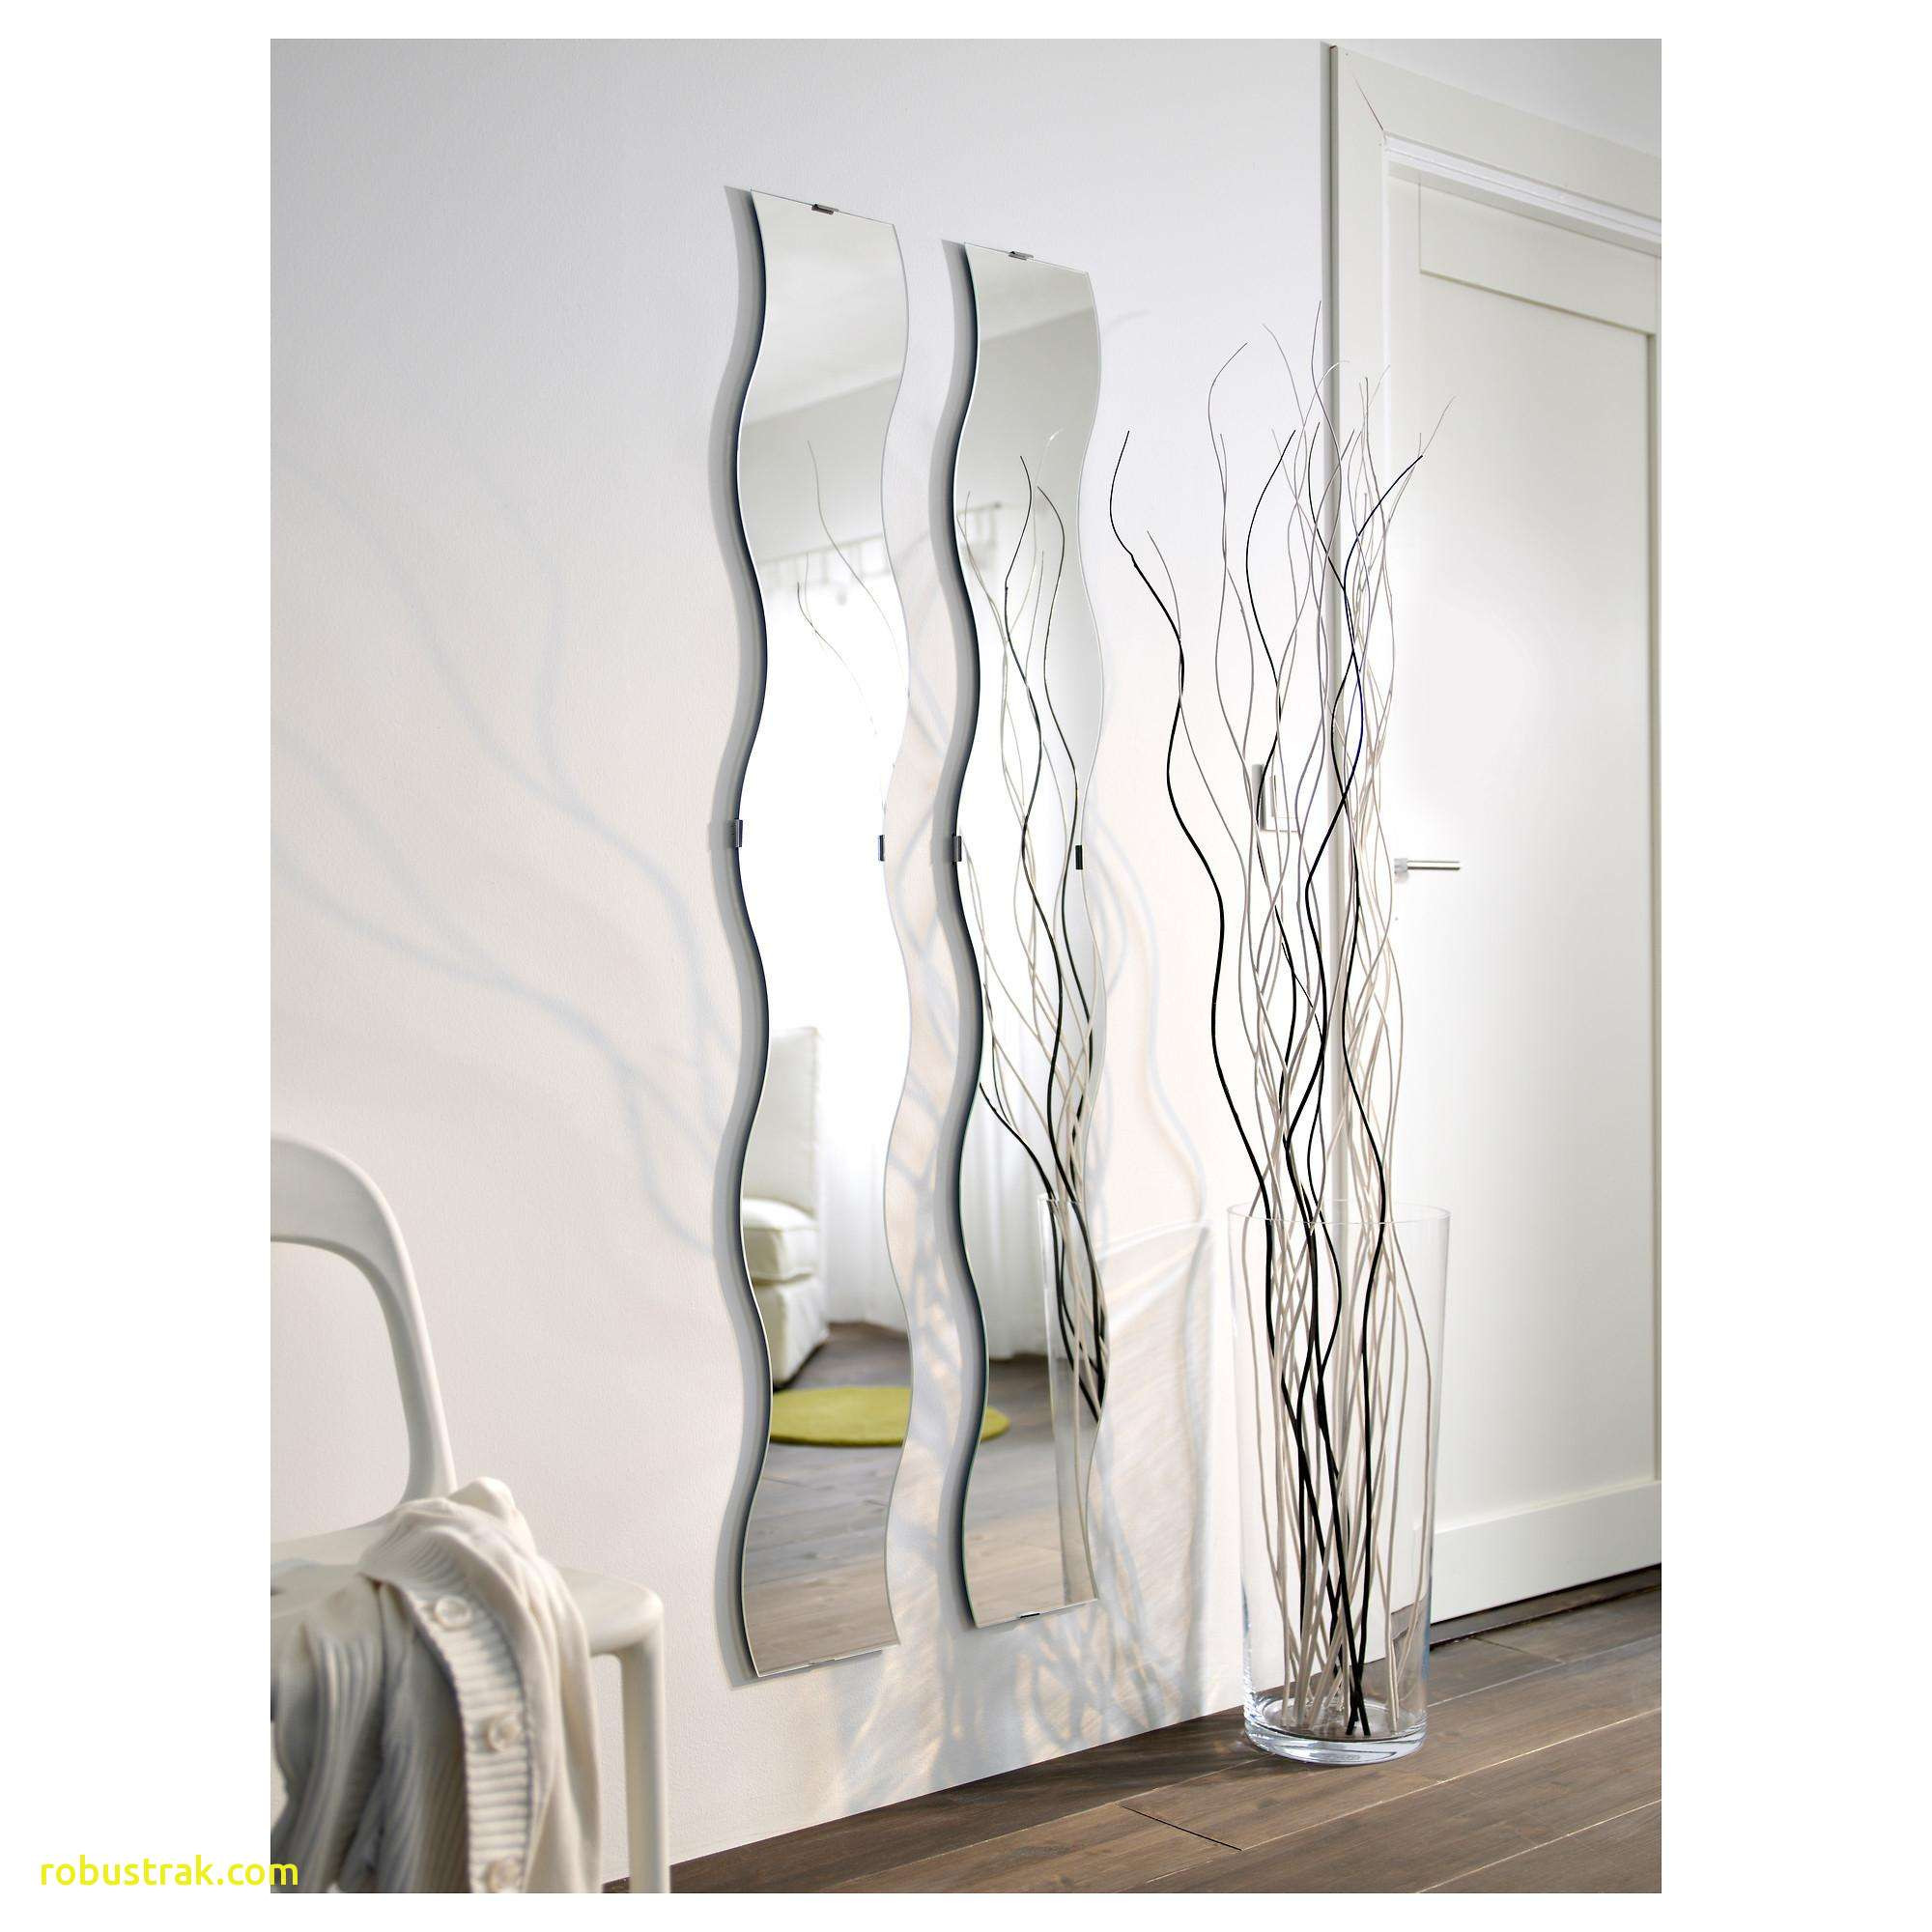 living room vase of elegant ikea room dividers home design ideas intended for full size of living room ikea vases luxury pe s5h vases ikea floor vase i size